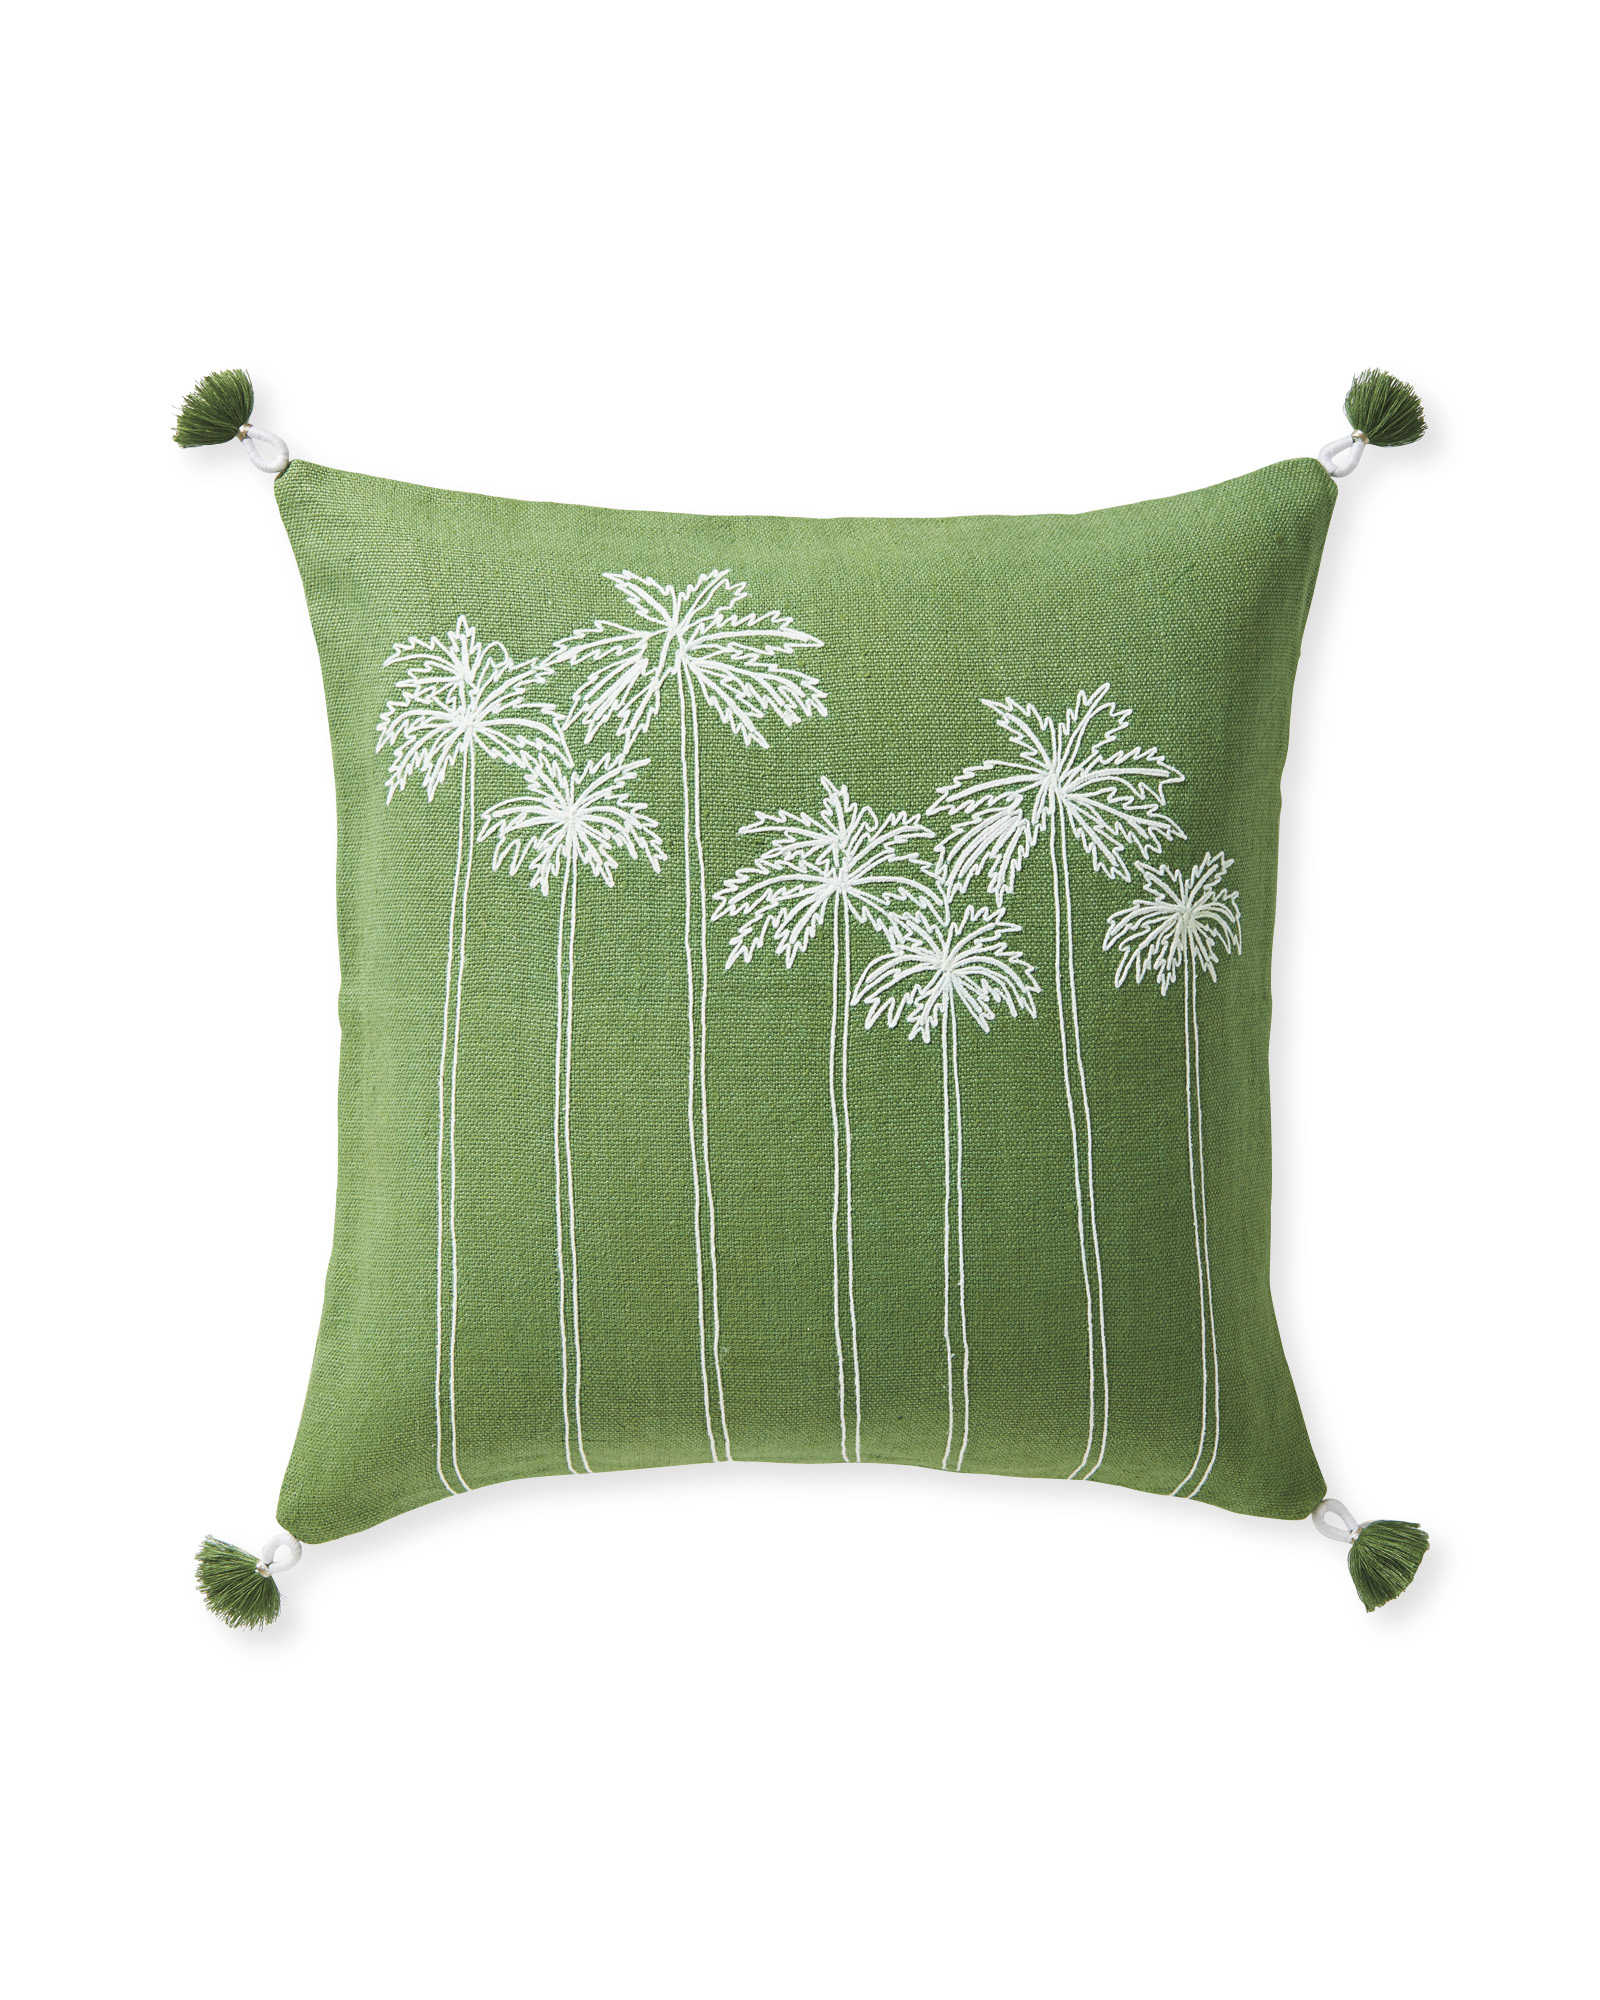 Seabreeze Pillow Cover, Moss